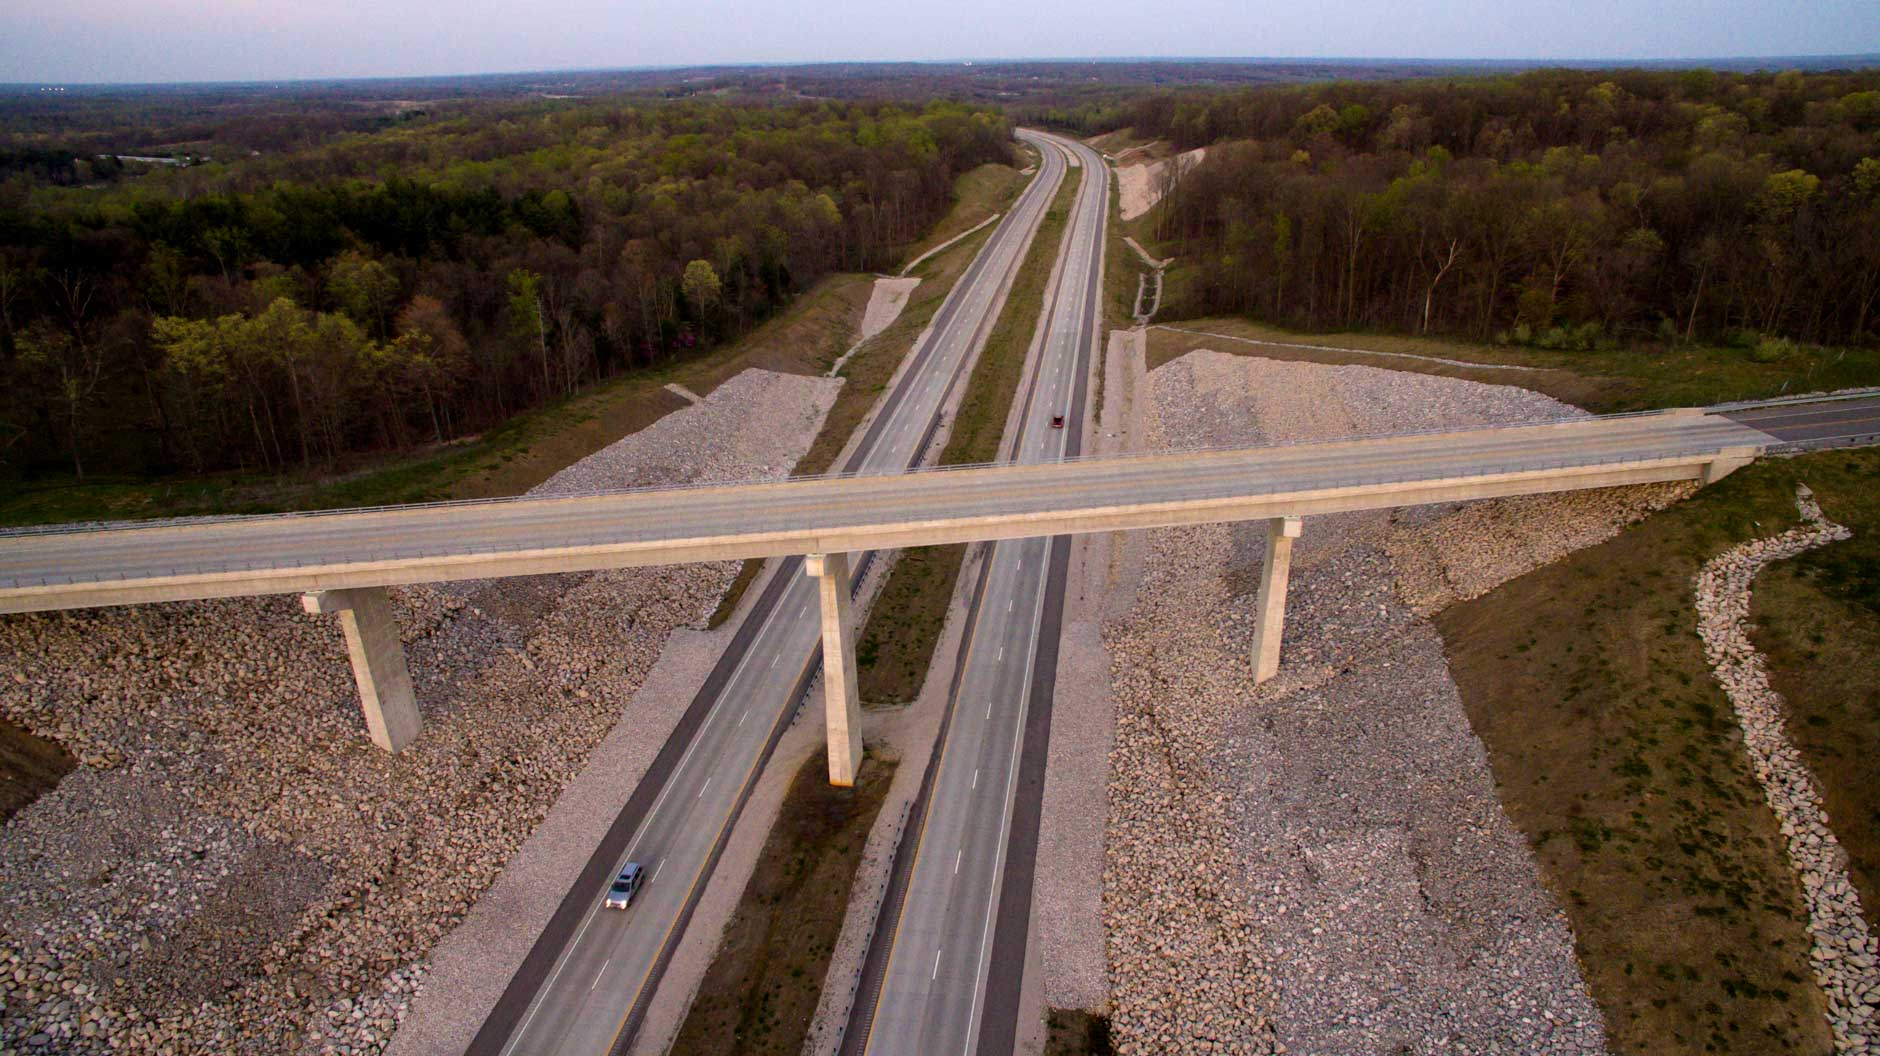 The Harmony Road bridge spanning Interstate 69 is seen from the air near Bloomington, Indiana on Wednesday, April 12, 2017. (Photo by James Brosher)